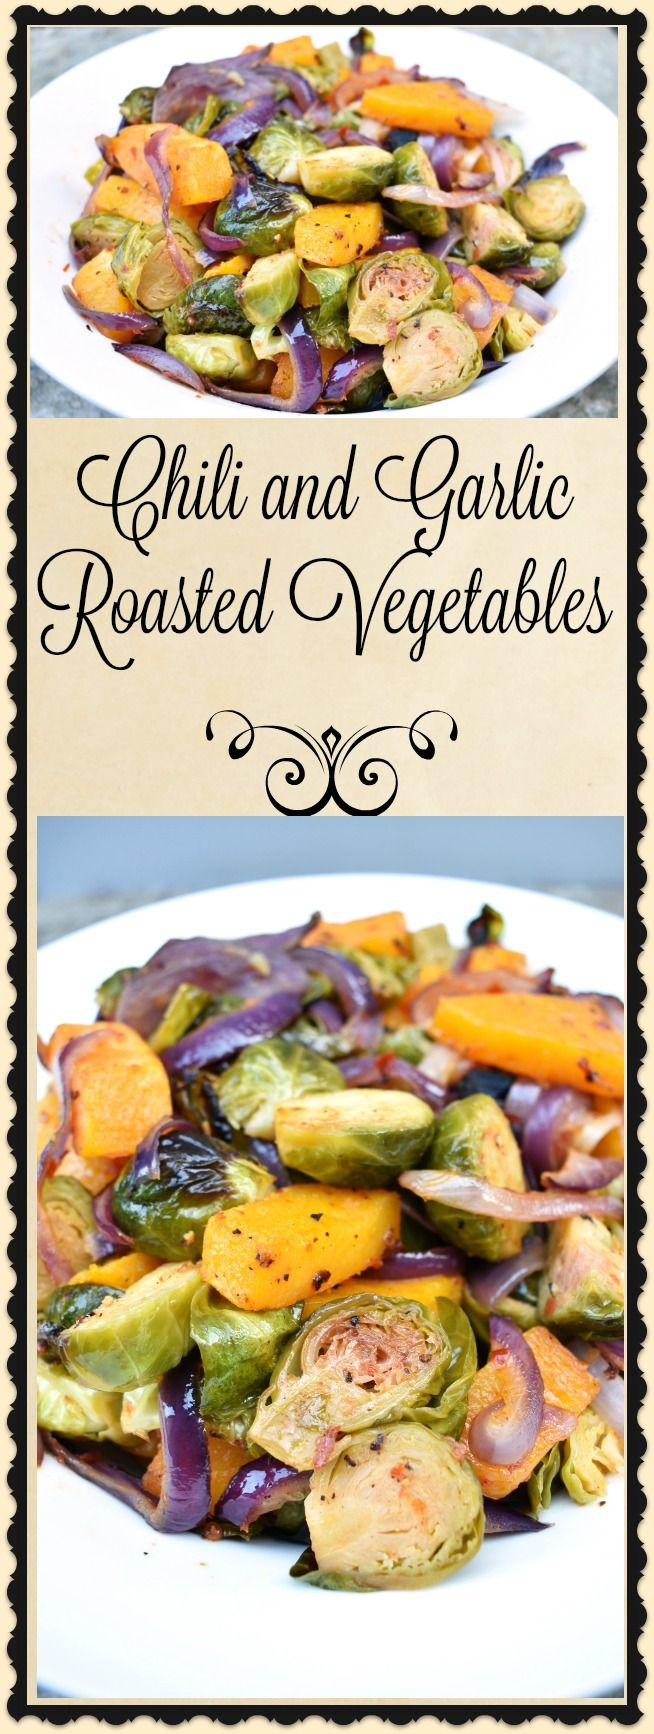 TheseChili and Garlic Roasted Vegetables are a perfect side for roast chicken, pork chops, or even a nice steak. Whether you serve these for Sunday dinner or you just want to make a quick dinner after work, you'll love theseChili and Garlic Roasted Vegetables.